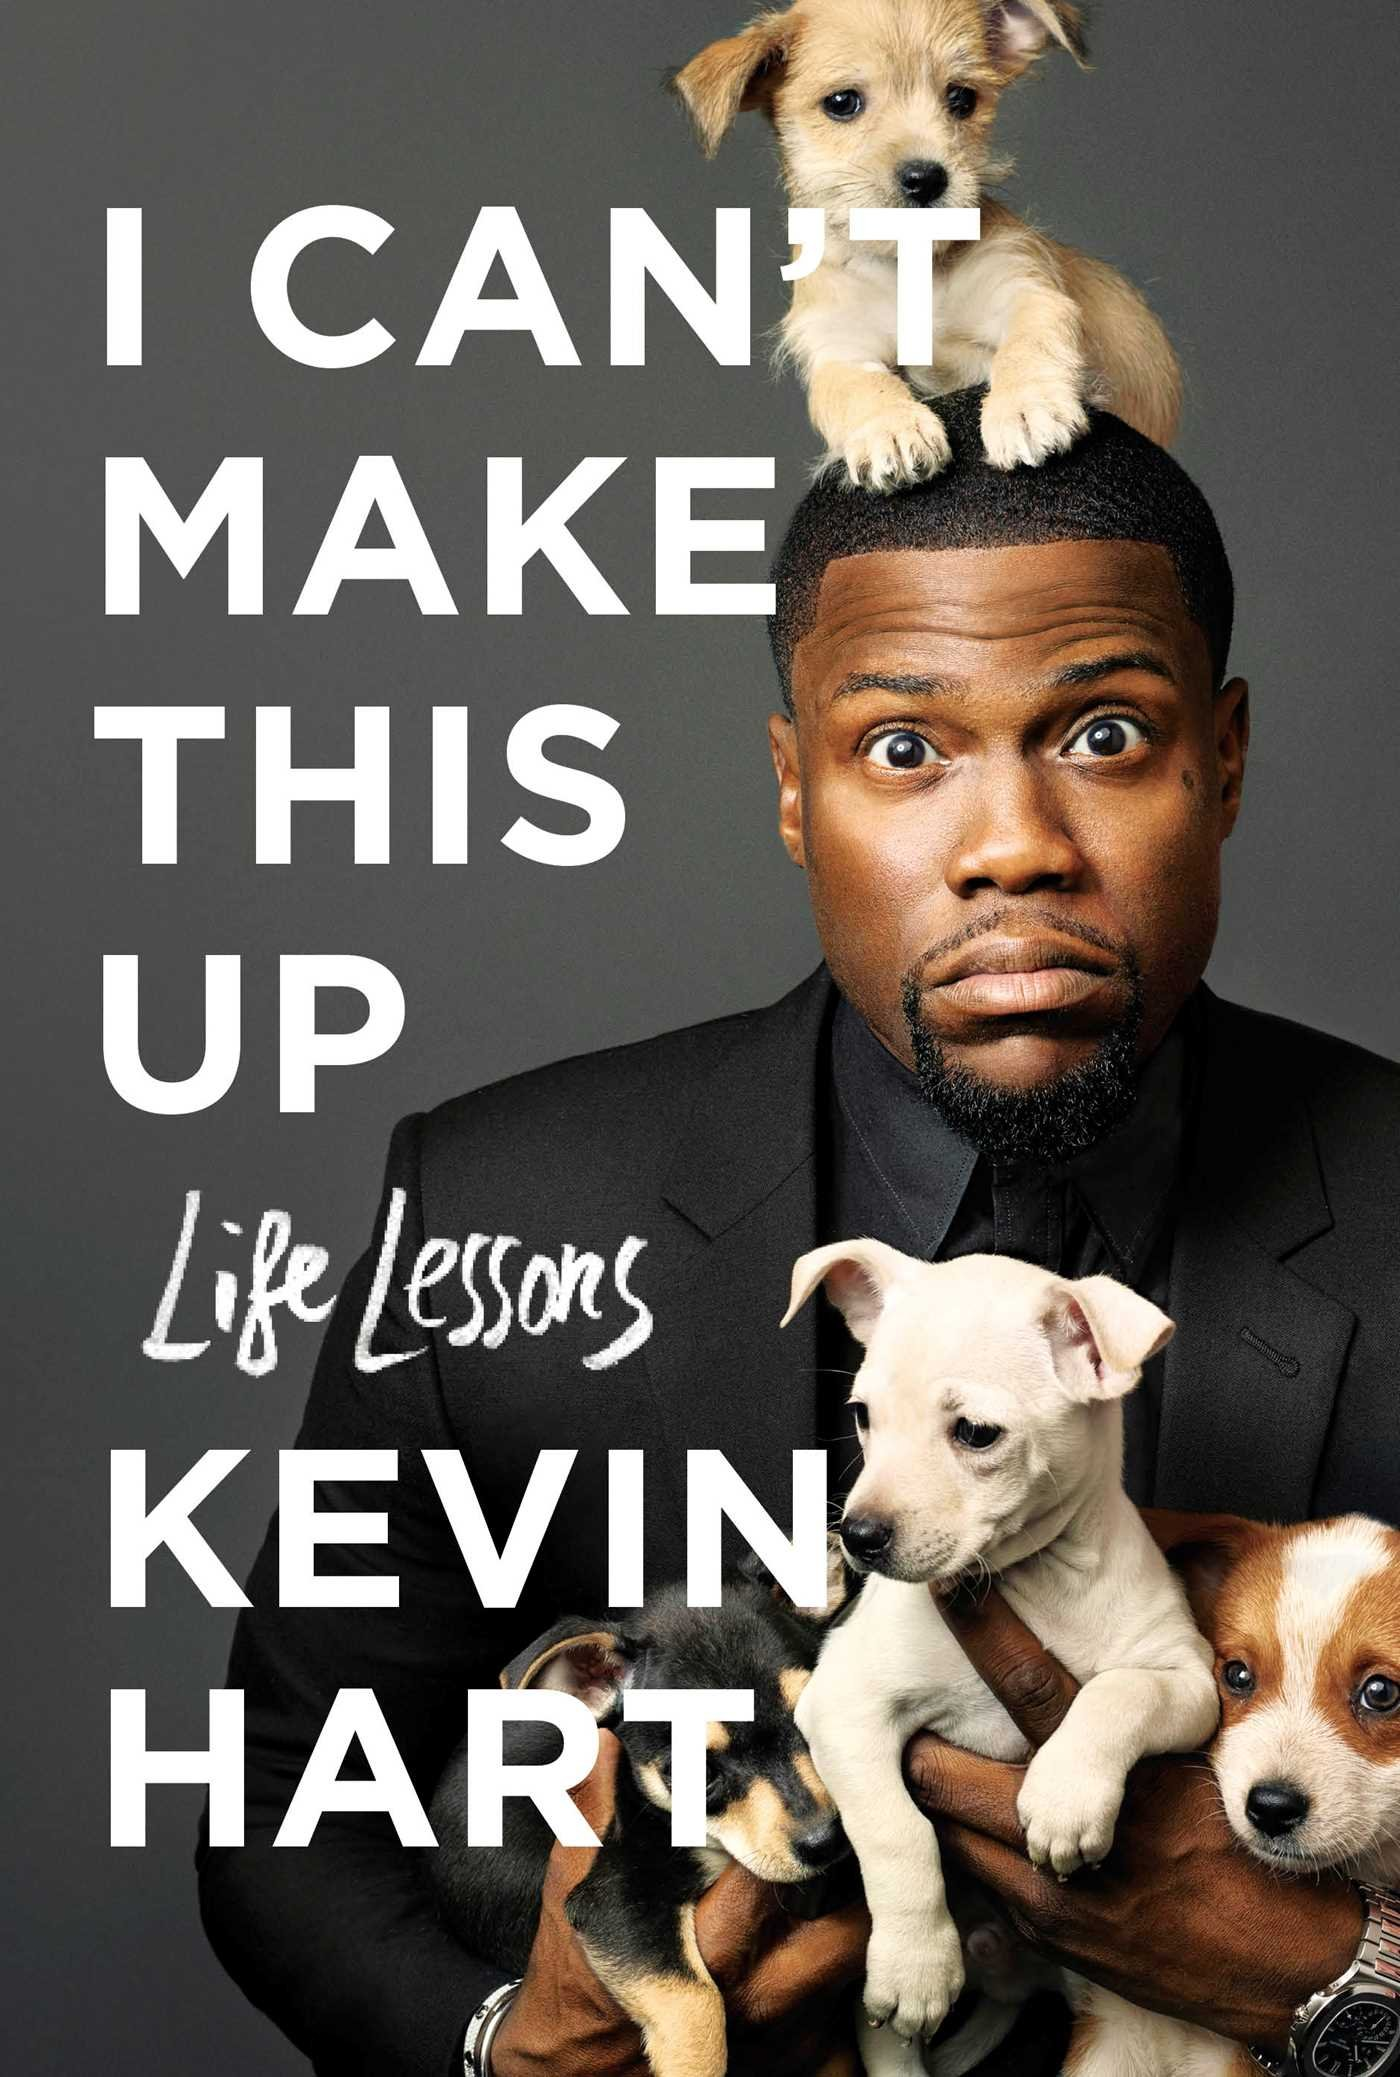 6. 'I Can't Make This Up' by Kevin Hart